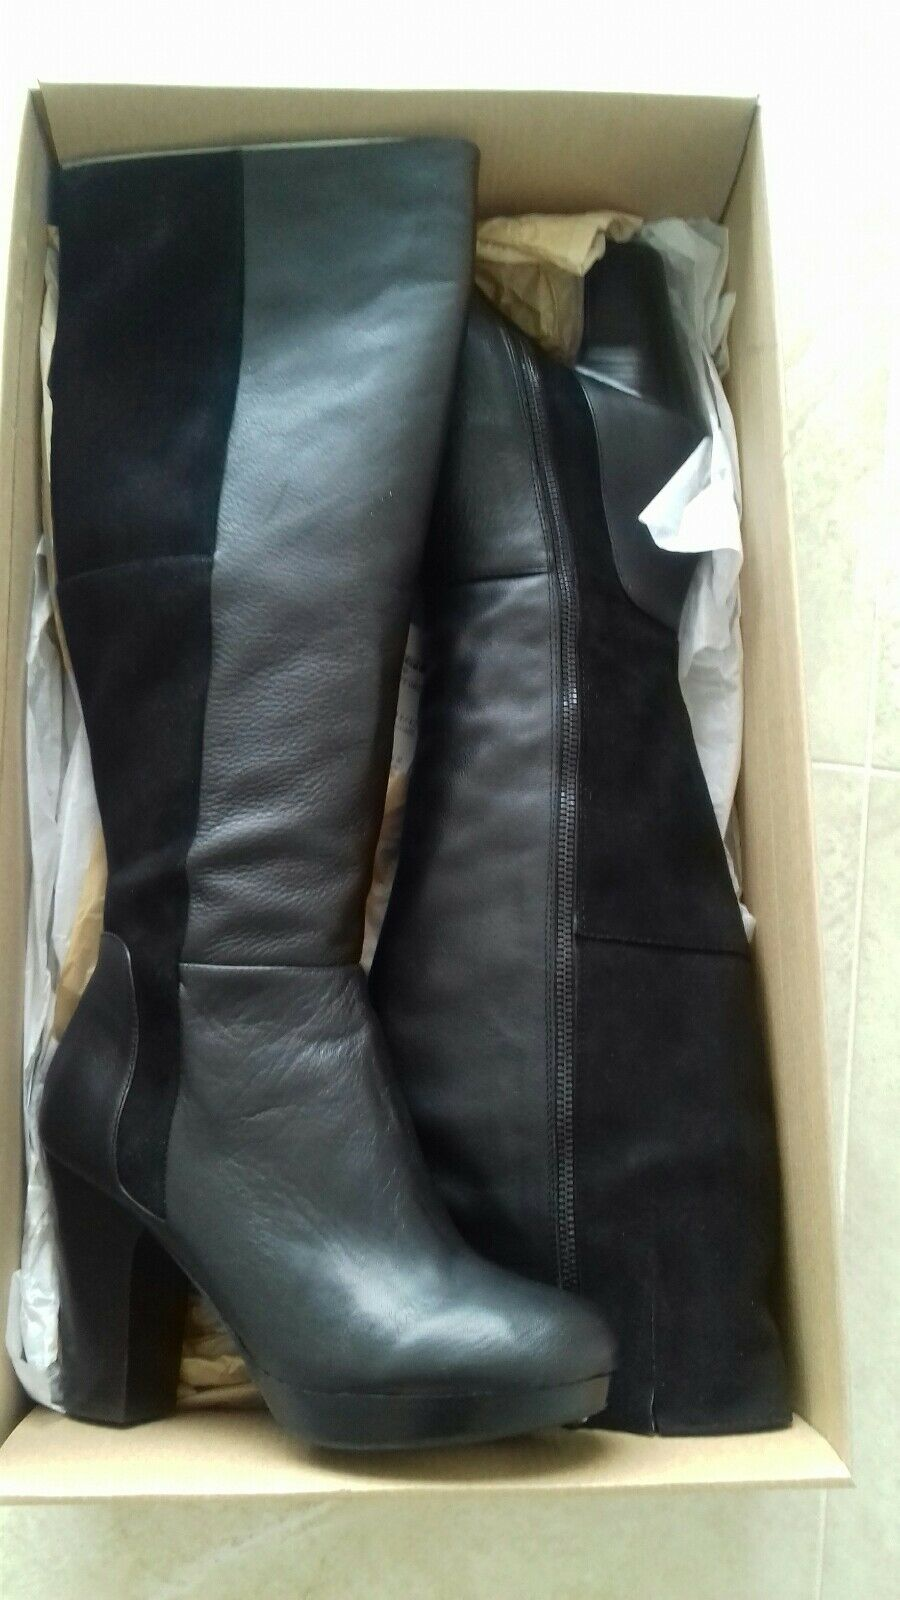 NEW BERTIE   SAMANDA  BLACK LEATHER HIGH LEG BOOTS SIZE UK 5 EU 38